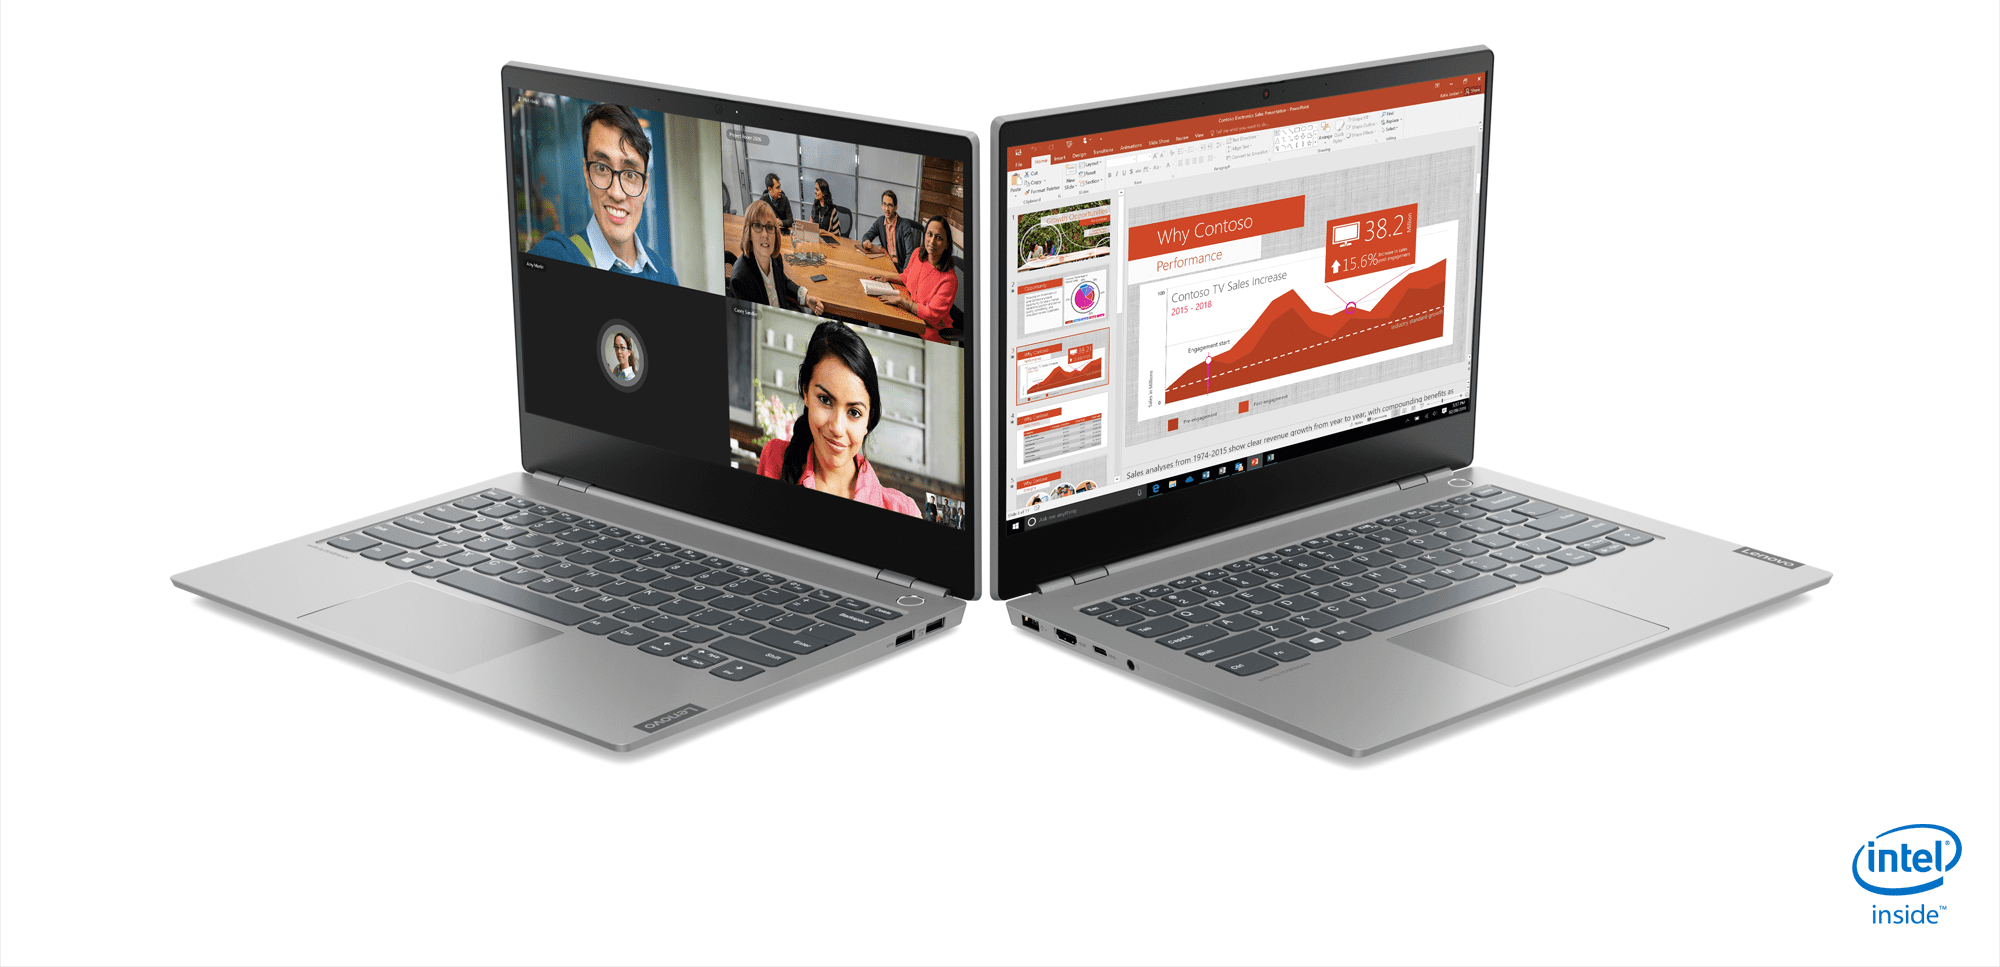 Meet the New ThinkBook: Built for Business, Designed for